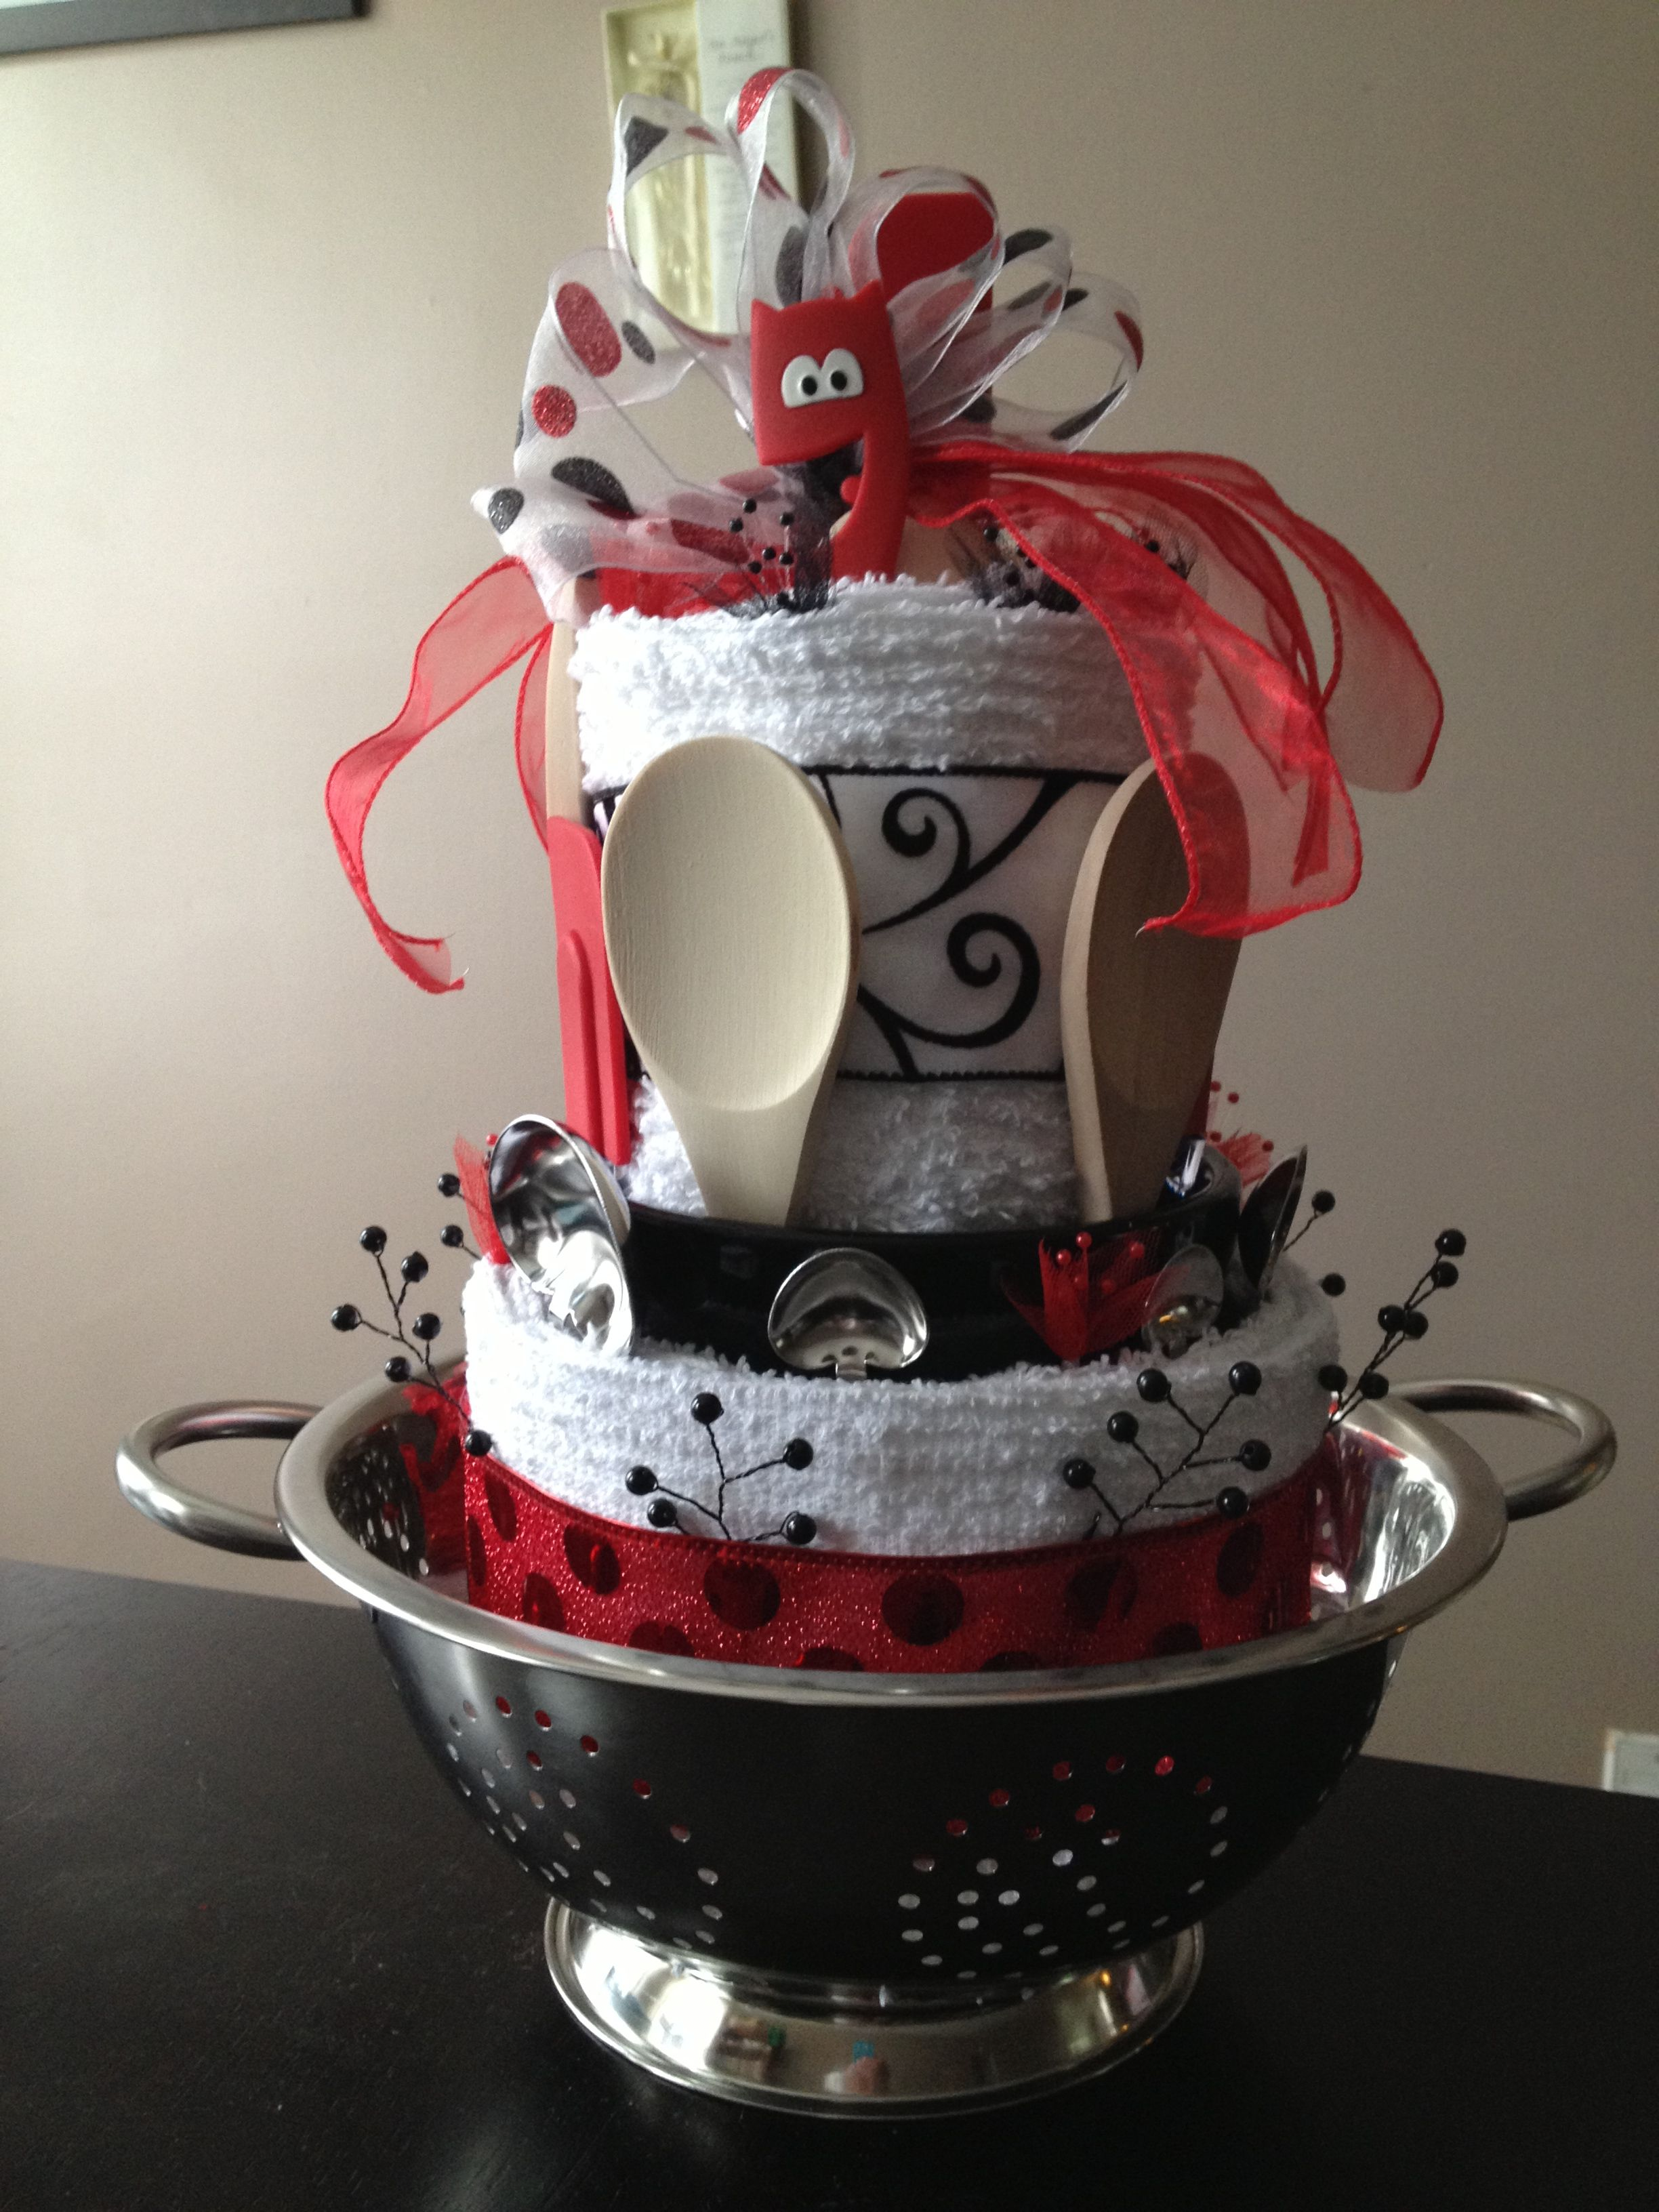 Kitchen Towel-utensil cake that I made for a bridal shower ...